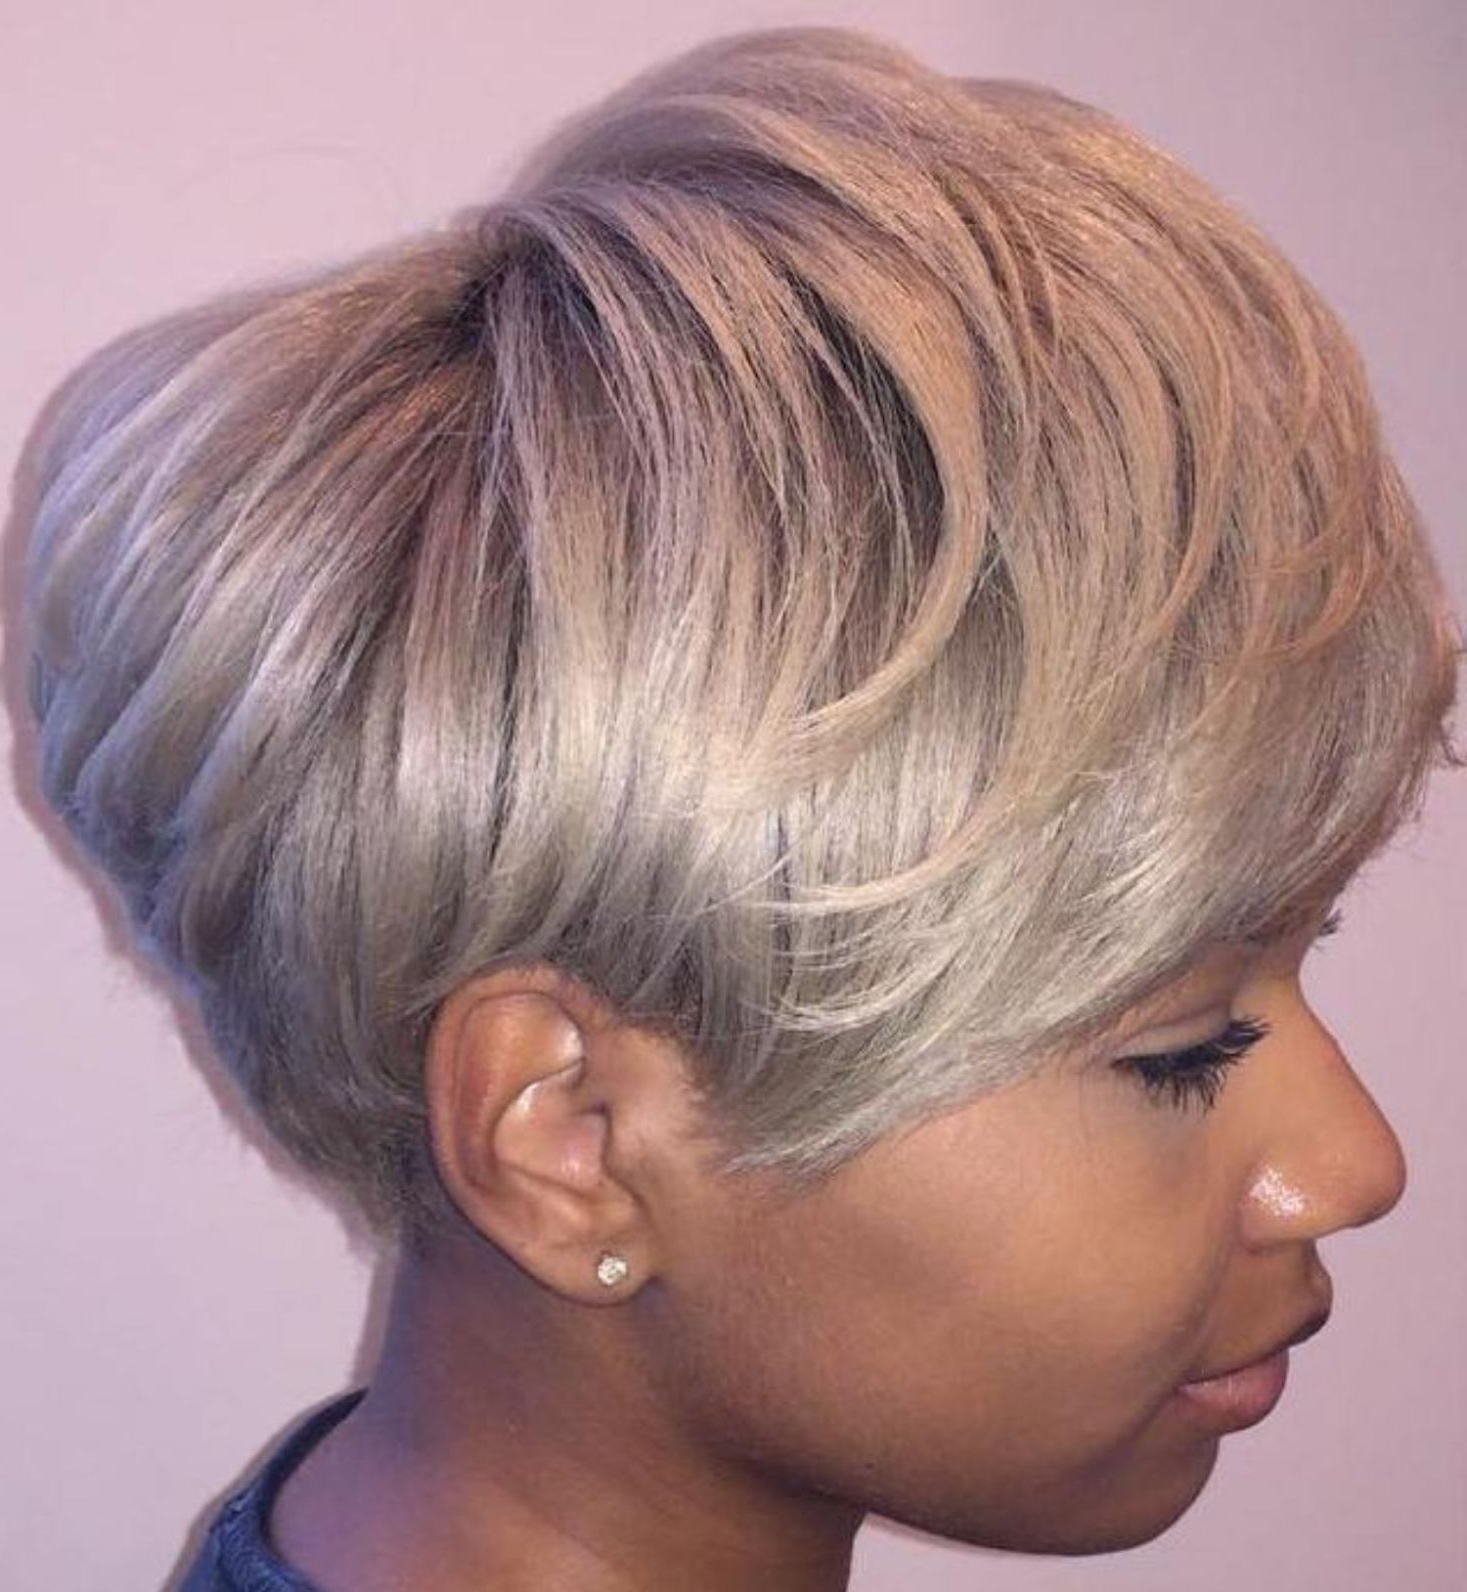 Ash Blonde Pixie Bob For Black Women | Hairstyles | Pinterest Pertaining To Black And Ash Blonde Pixie Bob Hairstyles (Gallery 6 of 20)